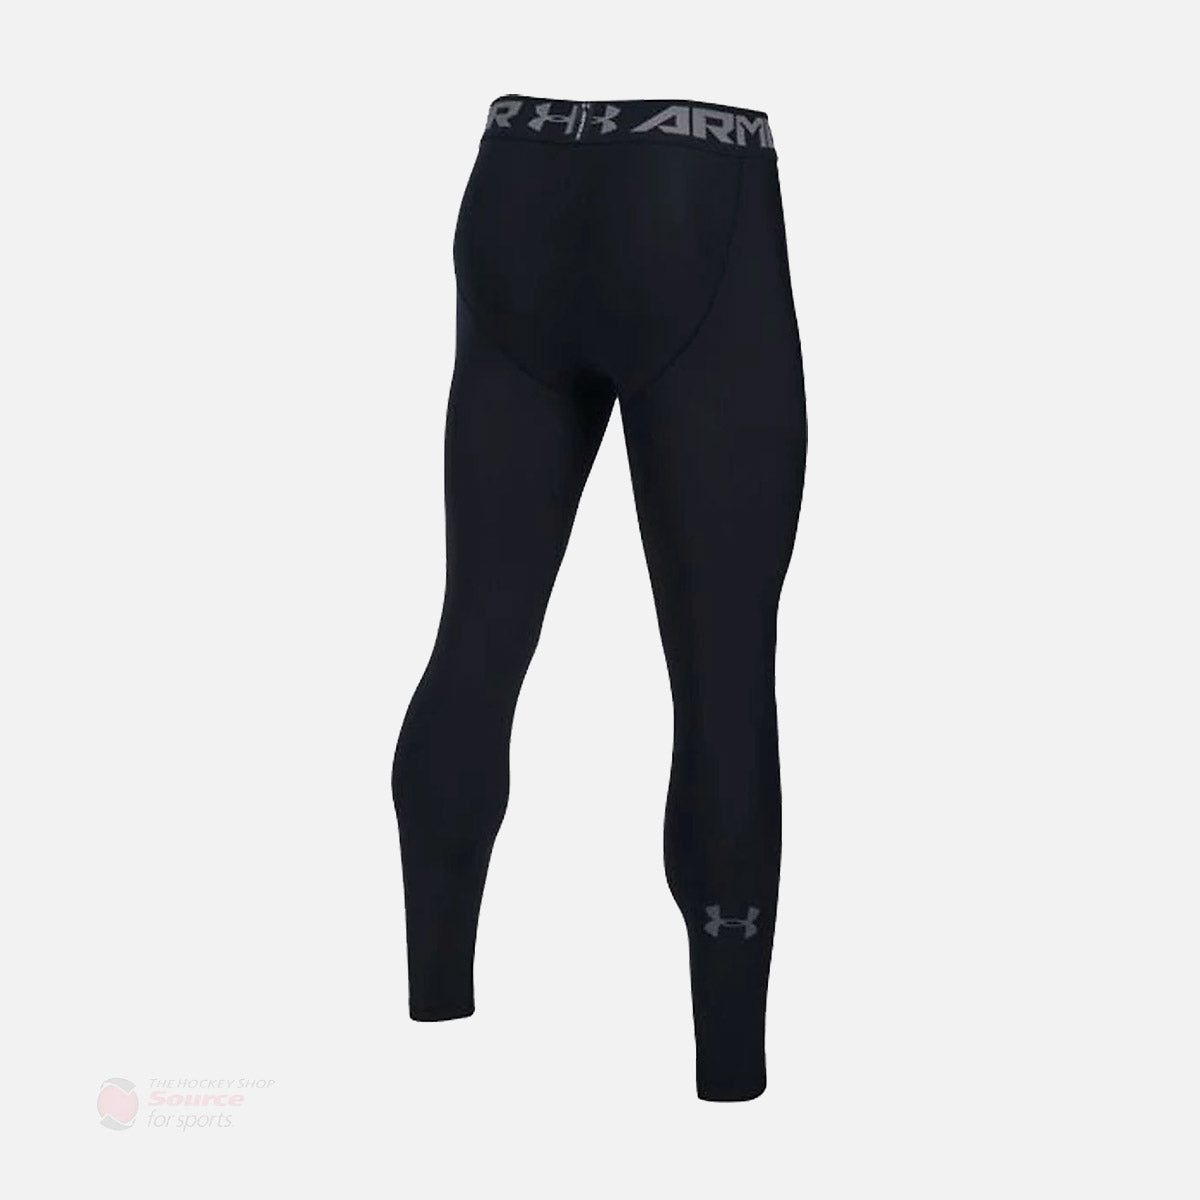 Under Armour Mens HeatGear Compression Pants